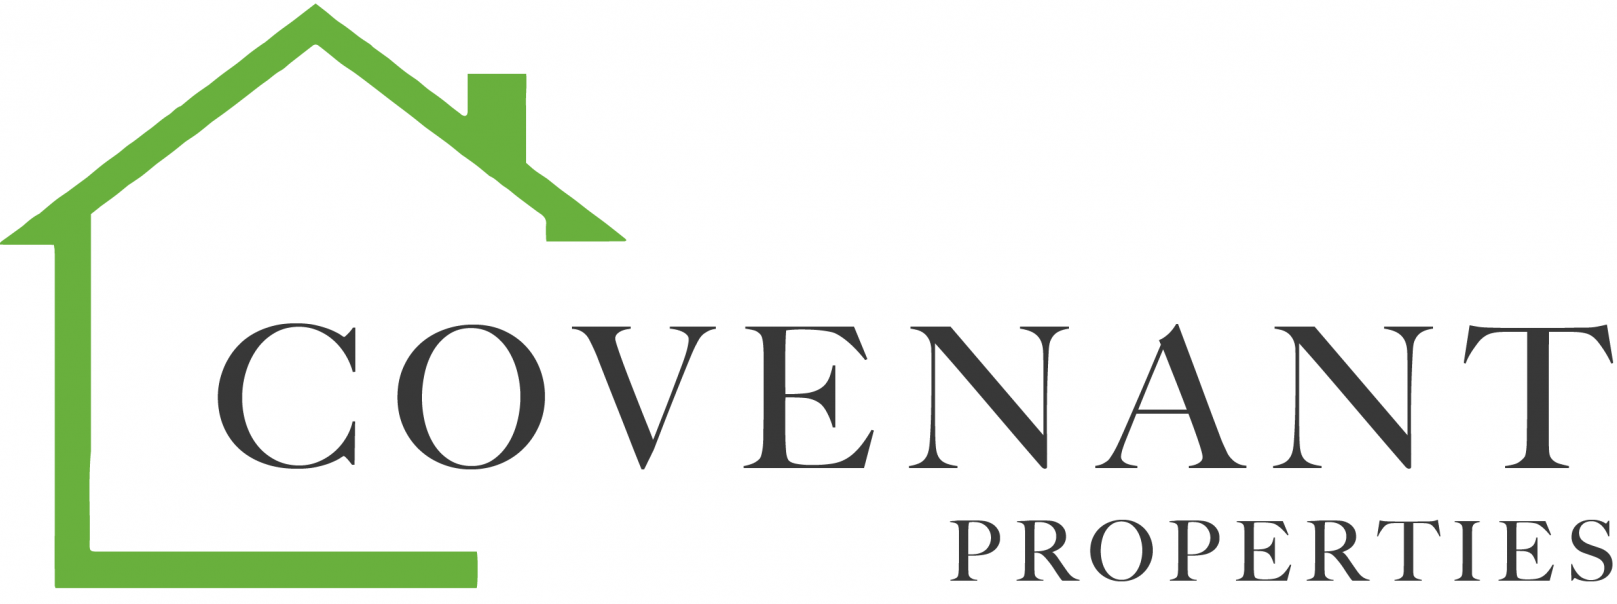 Covenant Properties logo